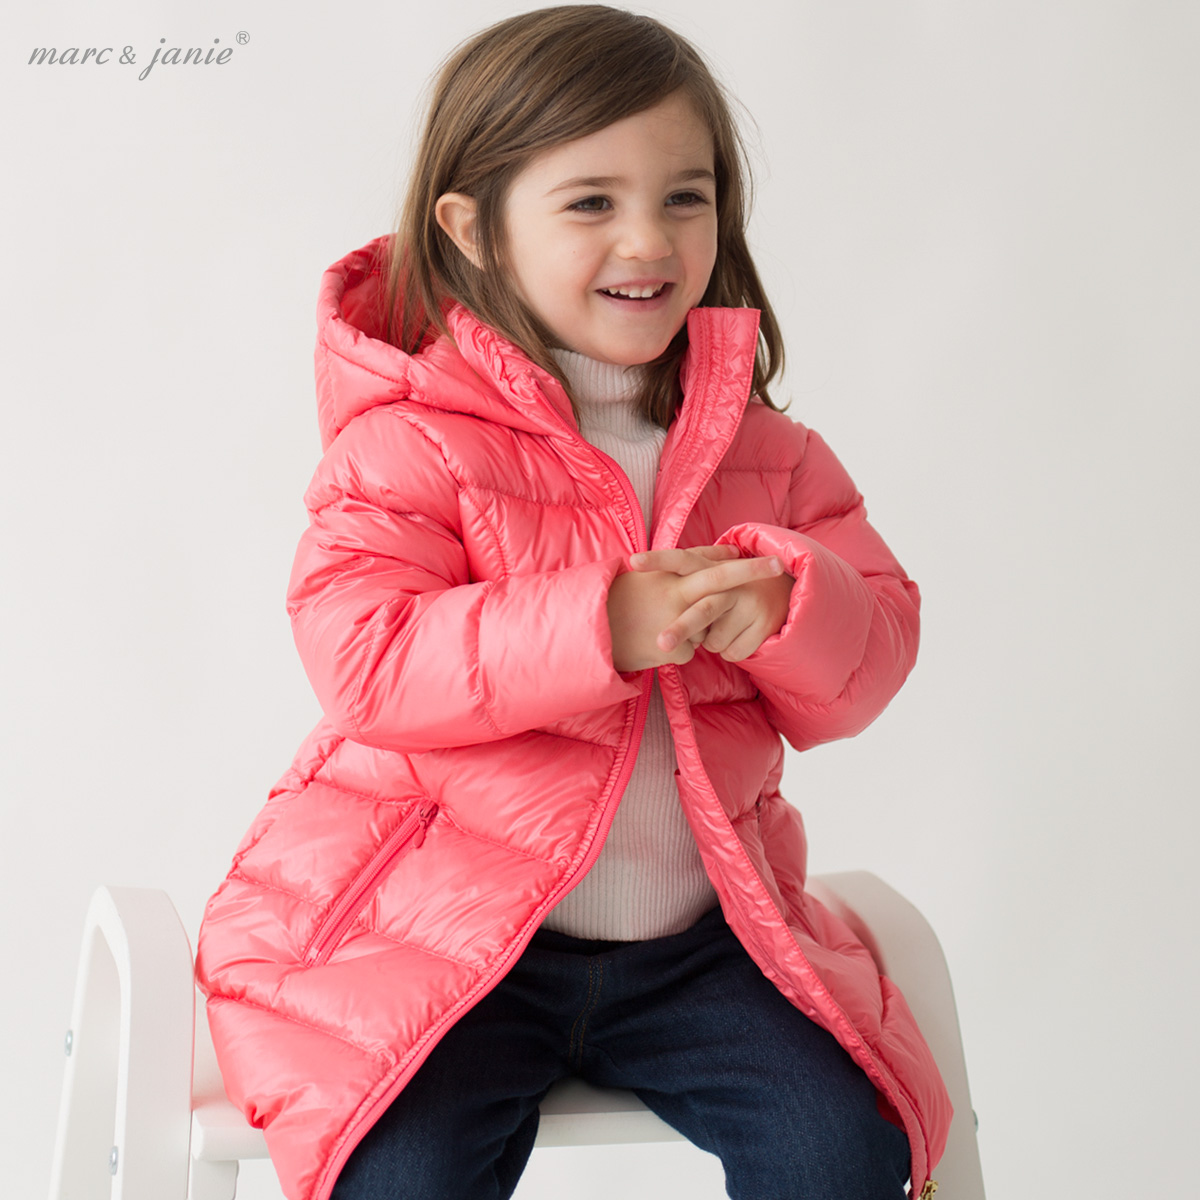 0-1-2 year old baby girl in a long, lightweight down jacket 6-8-9-10 months baby down jacket snowsuit baby-snowsuit infant